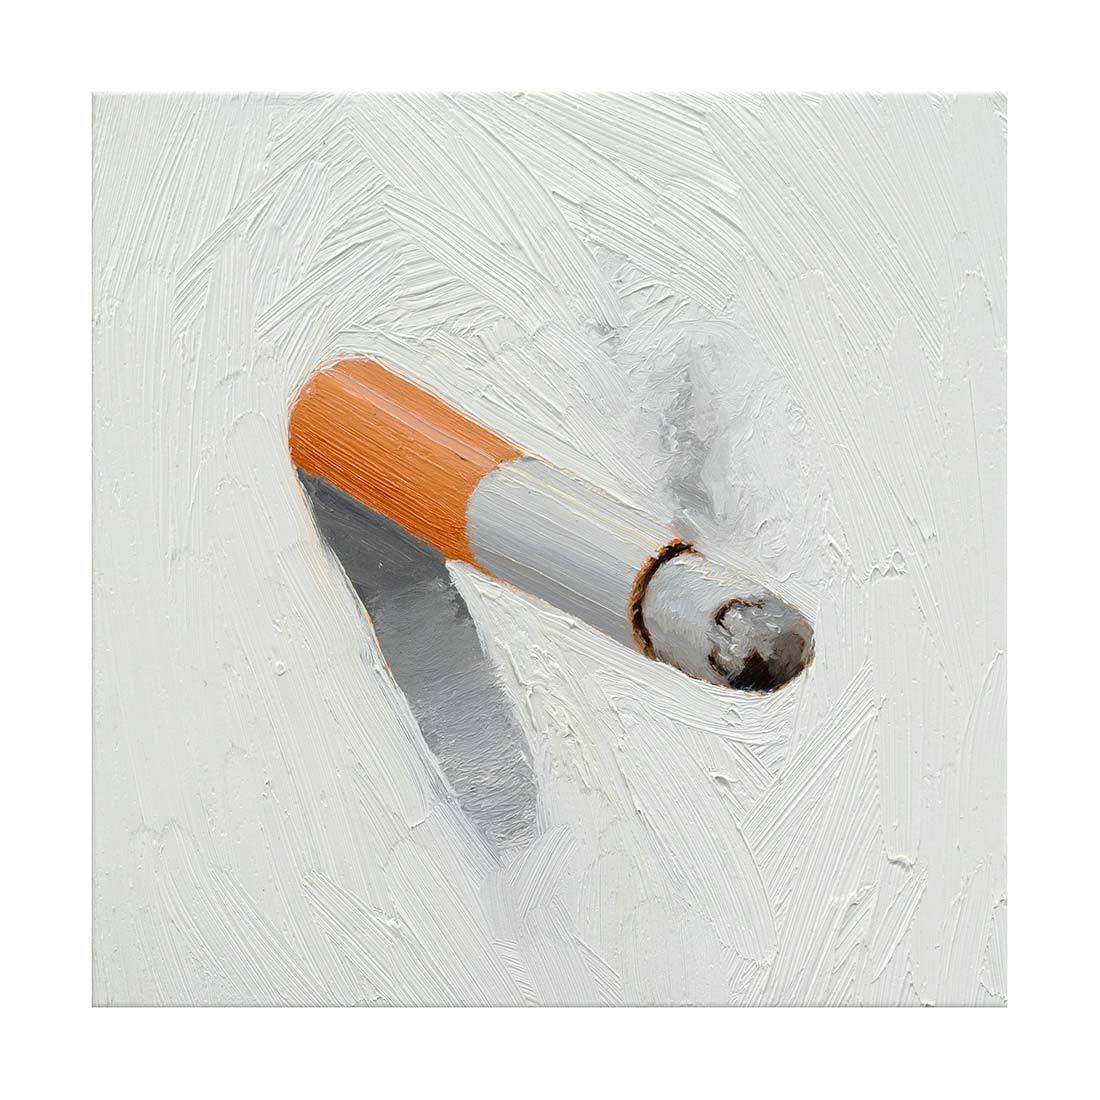 Cigarette Study No. 4